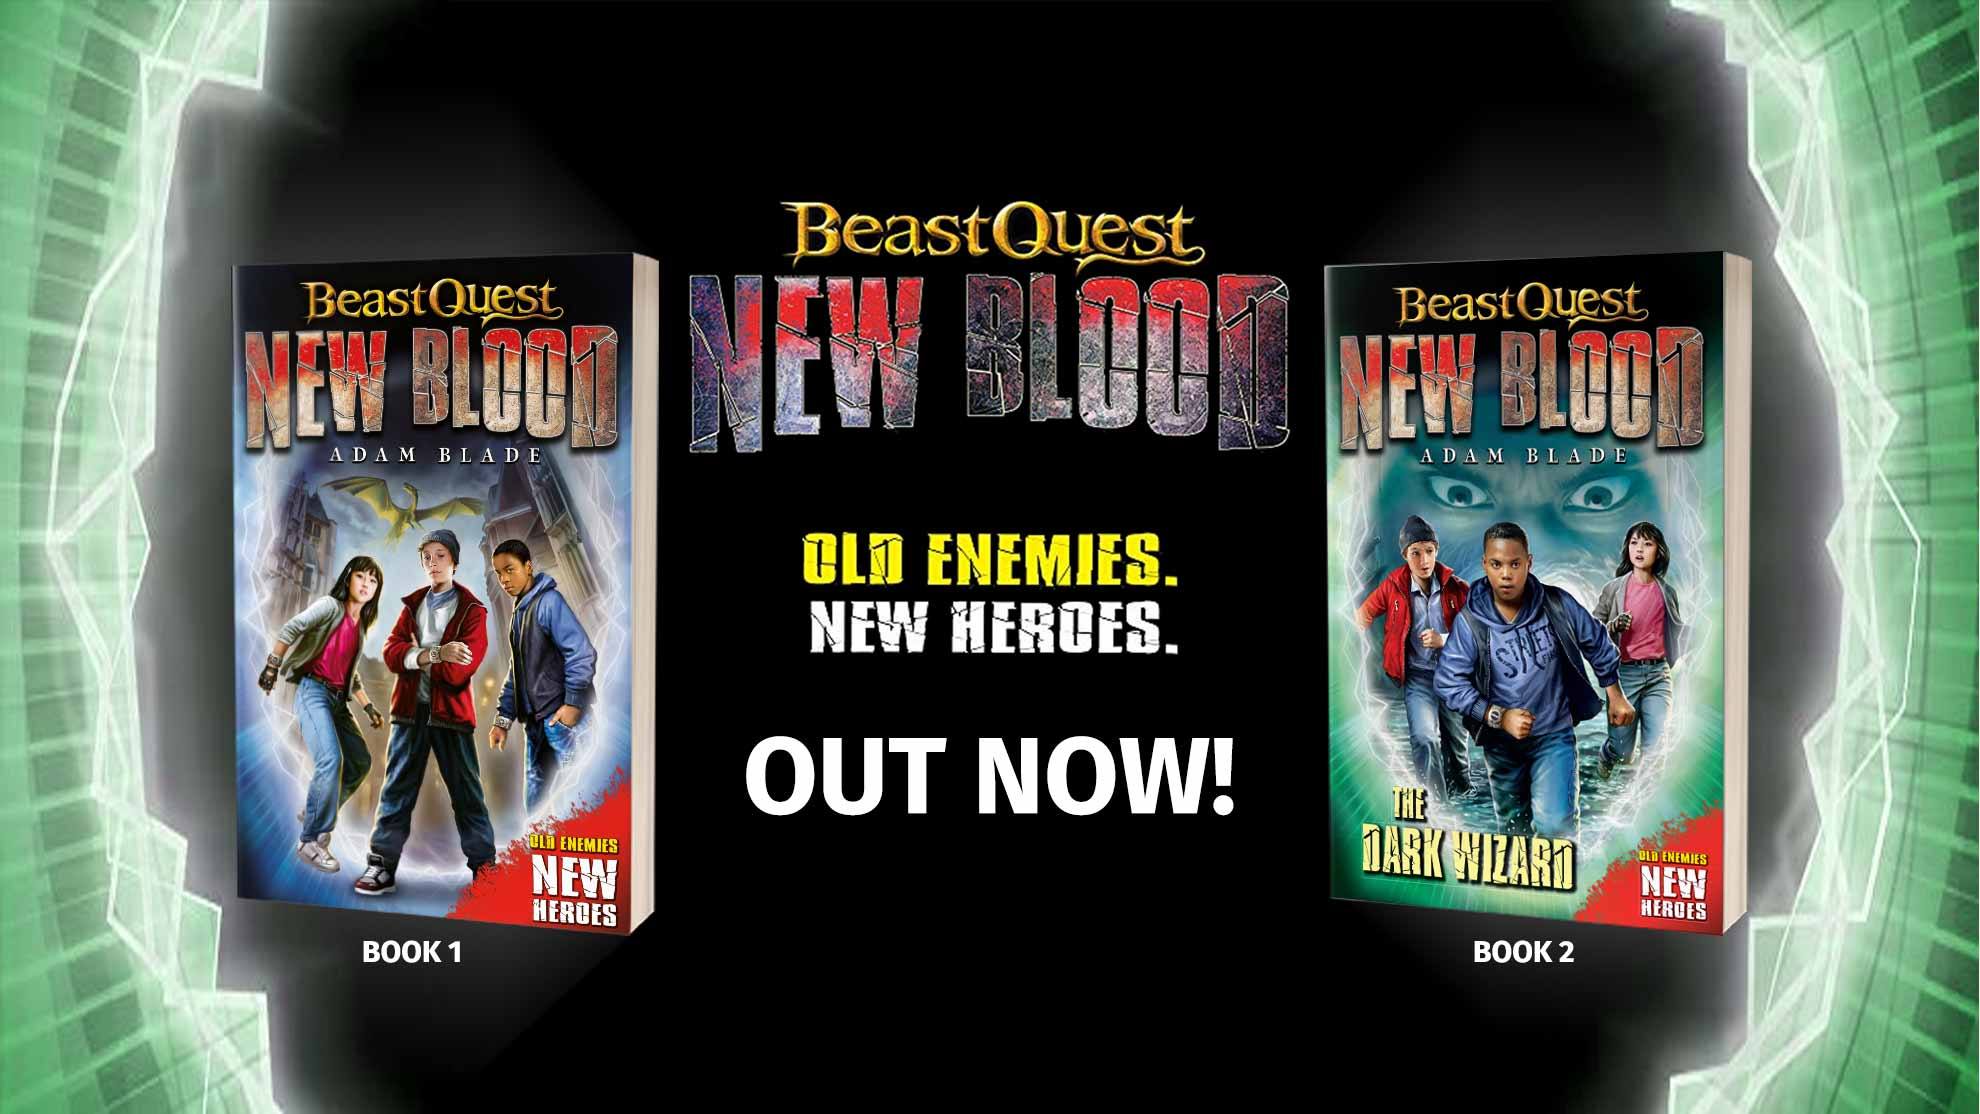 Beast Quest - New Blood, books 1 and 2